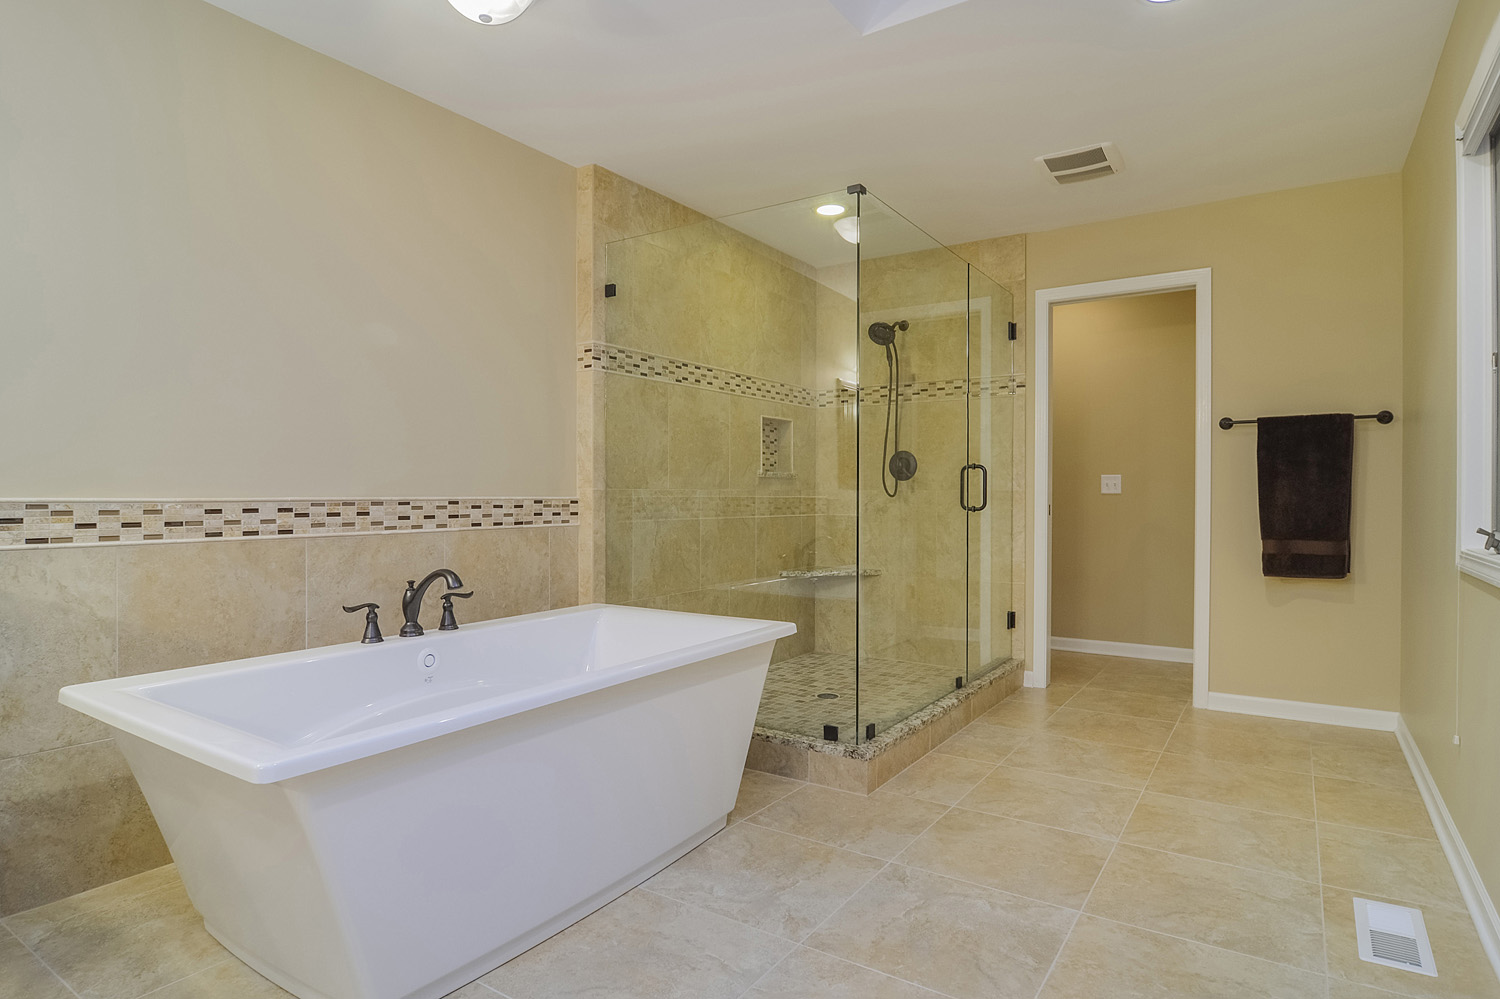 Bernard karan 39 s master bathroom remodel pictures home Bathroom remodeling services